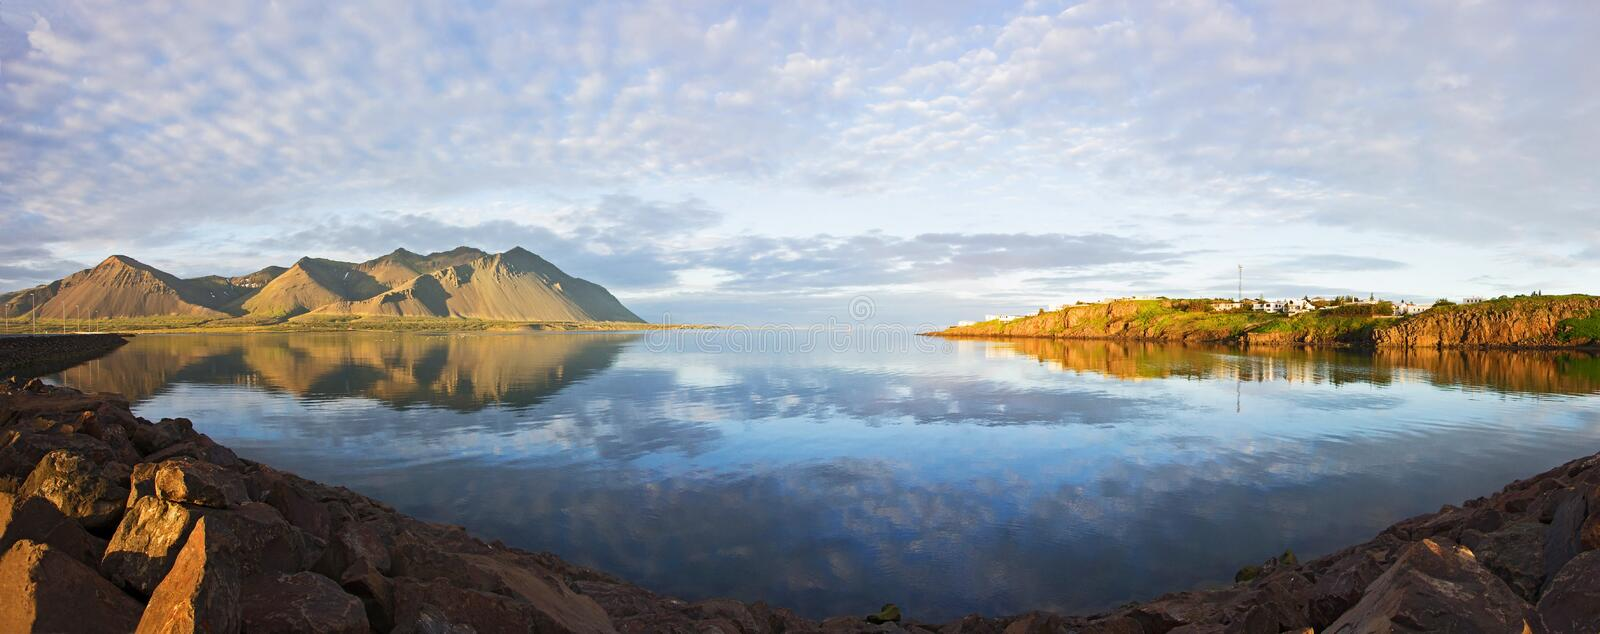 Majestic Panoramic summer view of West Icelandic delta near Borganes with reflection on water, Iceland.  royalty free stock image